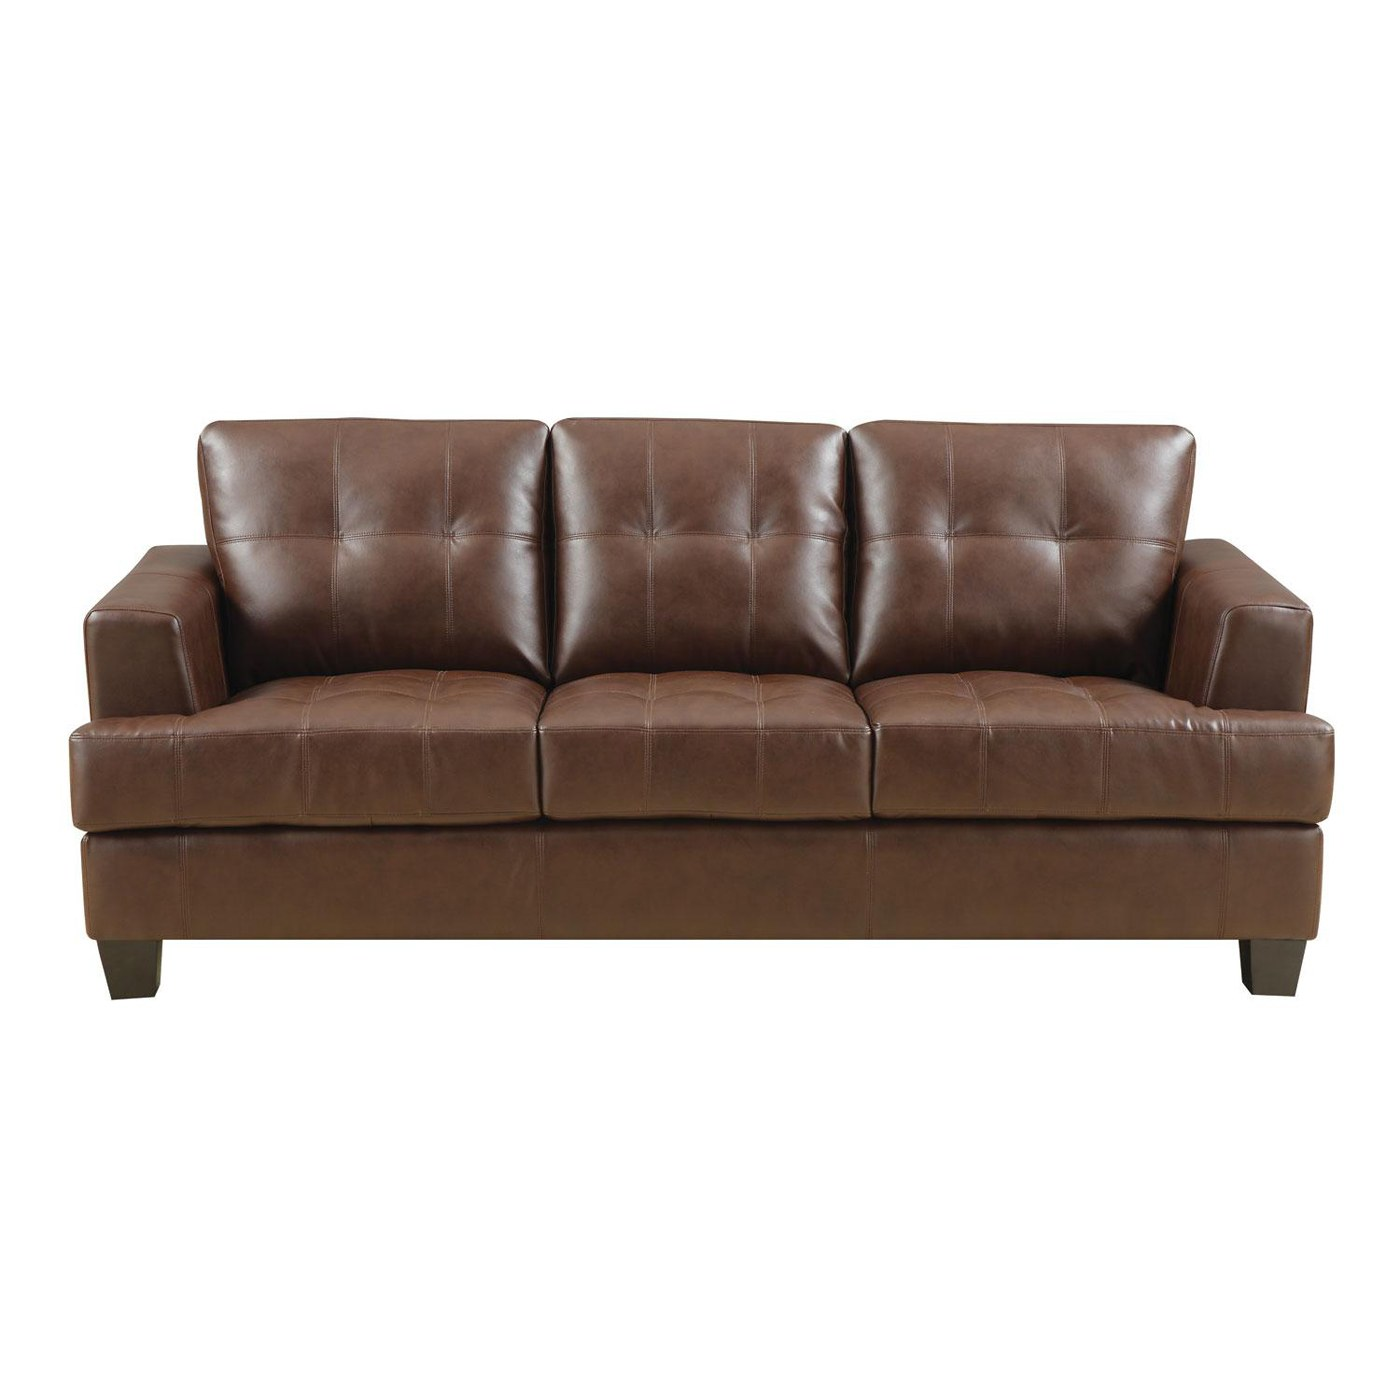 coaster samuel bonded leather sofa en cuir a vendre montreal with dark brown upholstery by